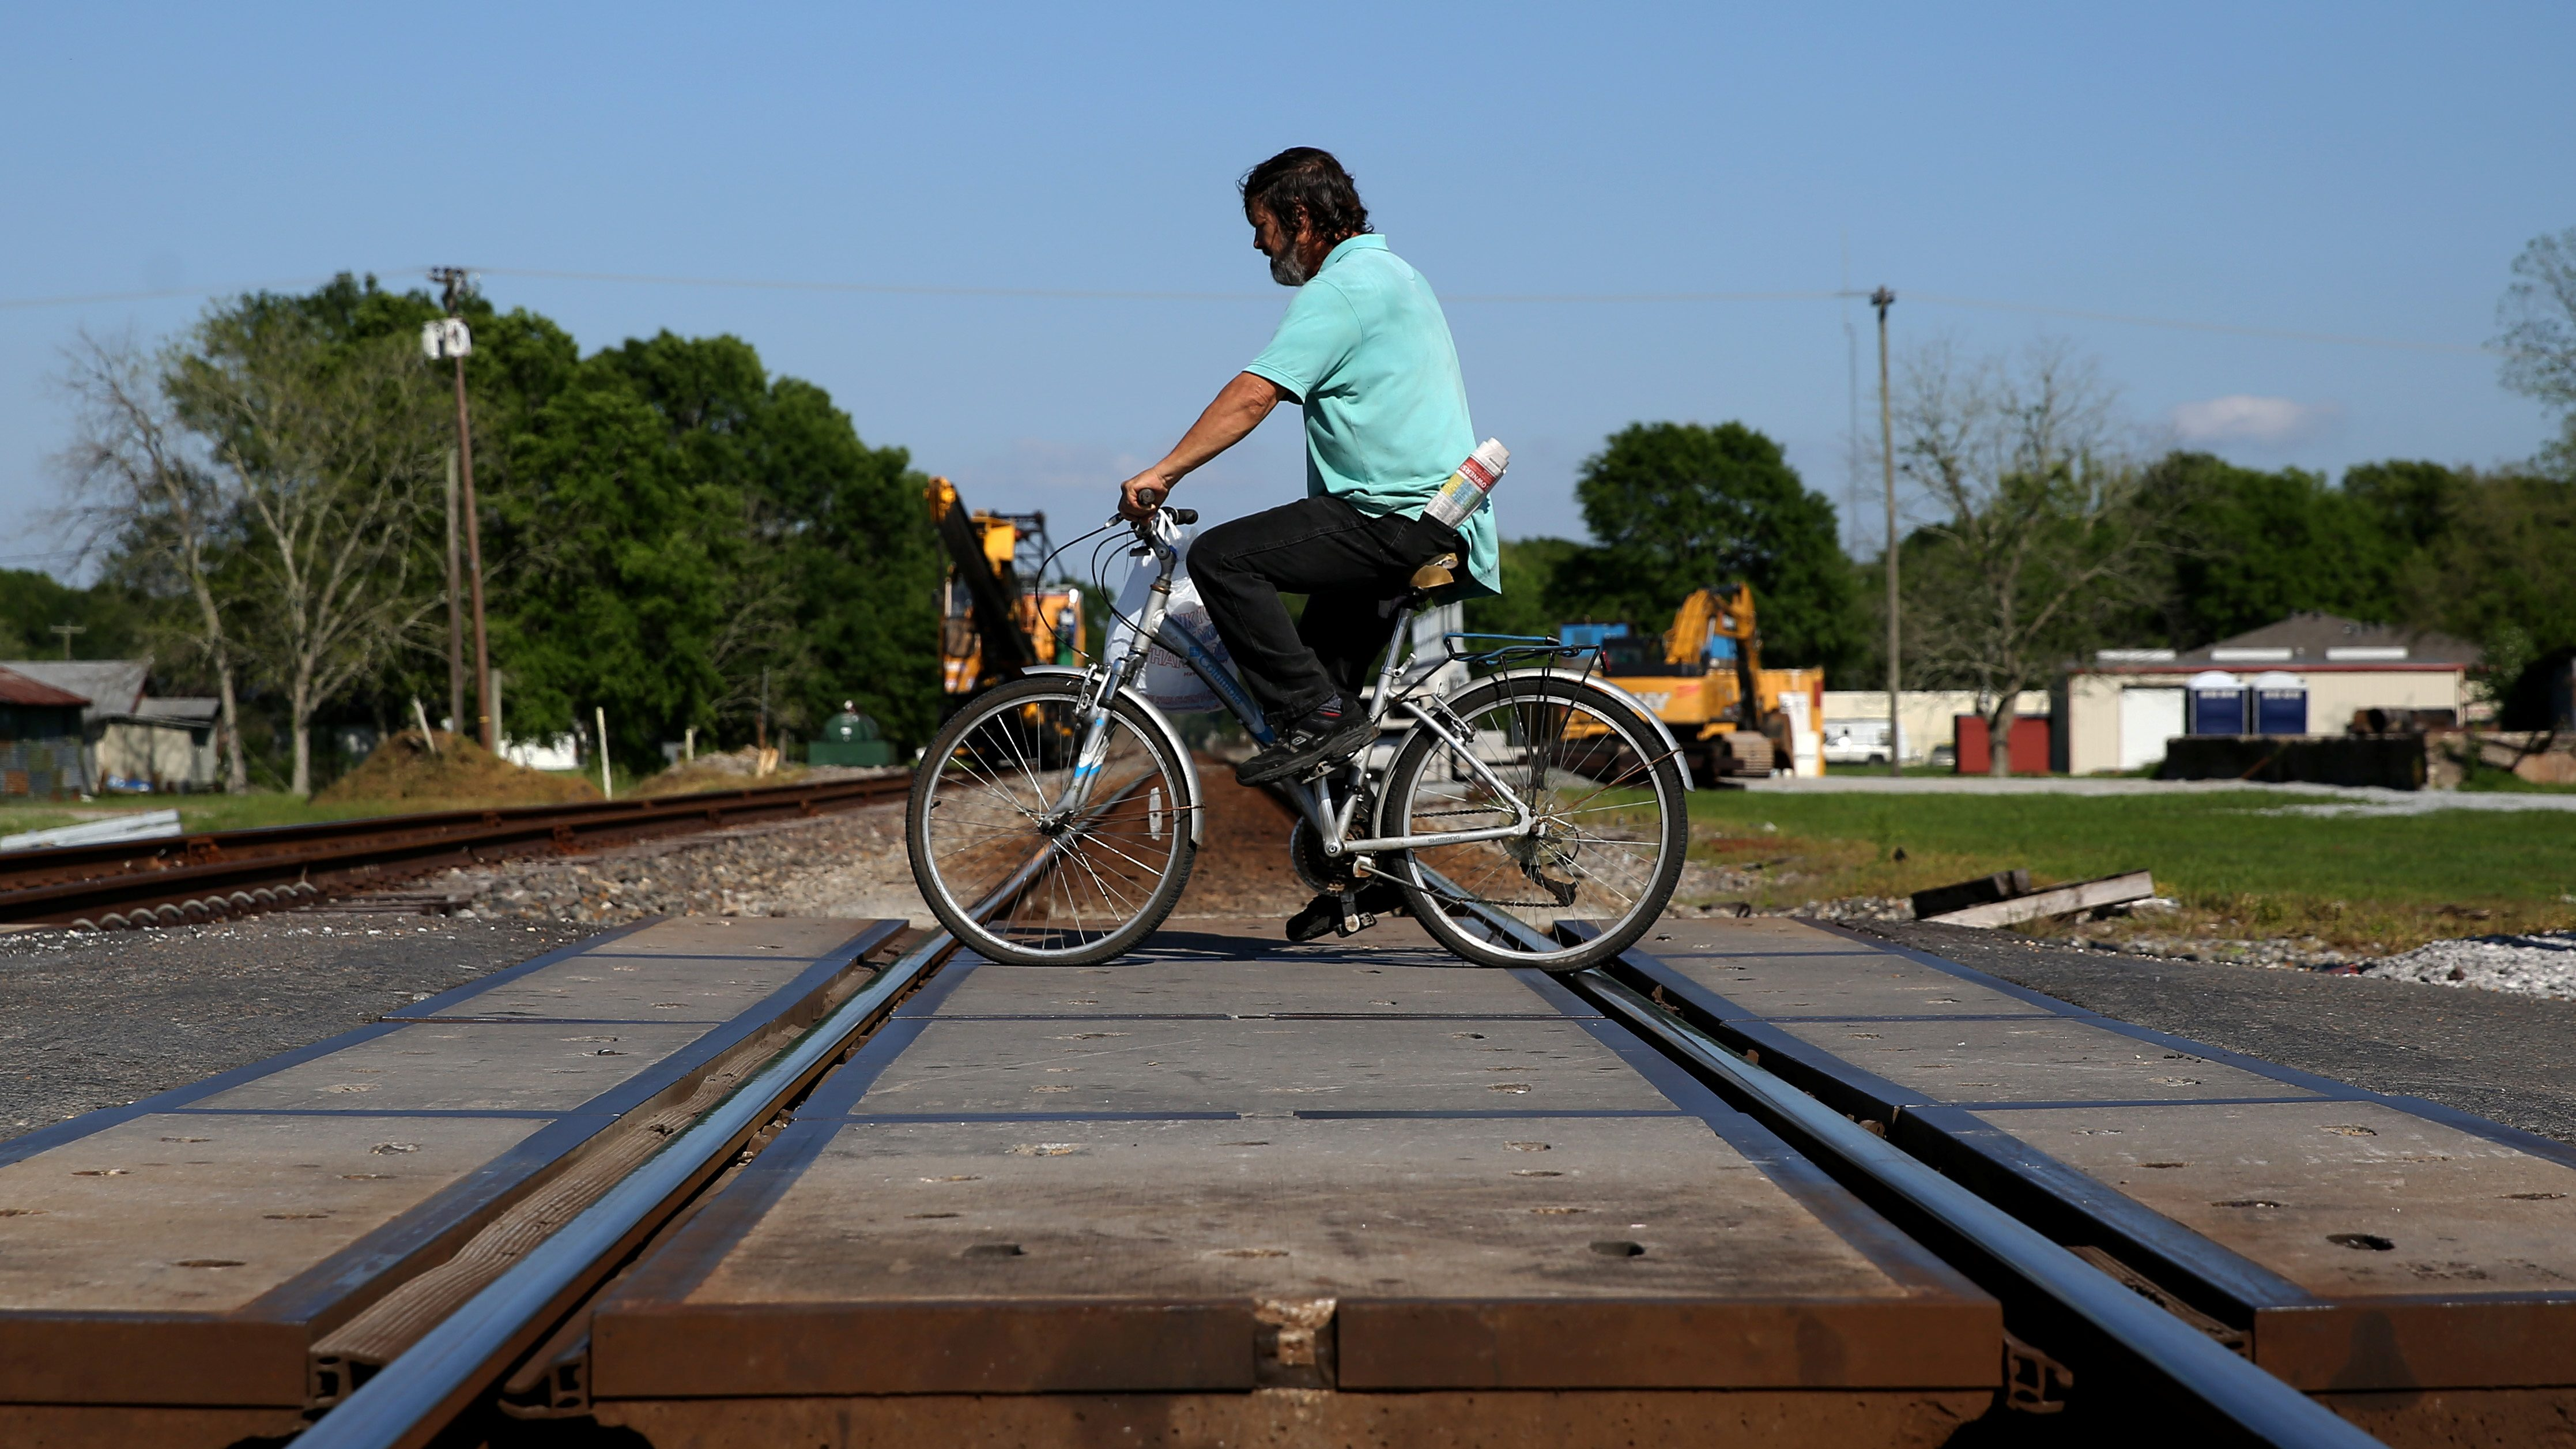 A man rides his bike over rail road tracks in rural Louisiana